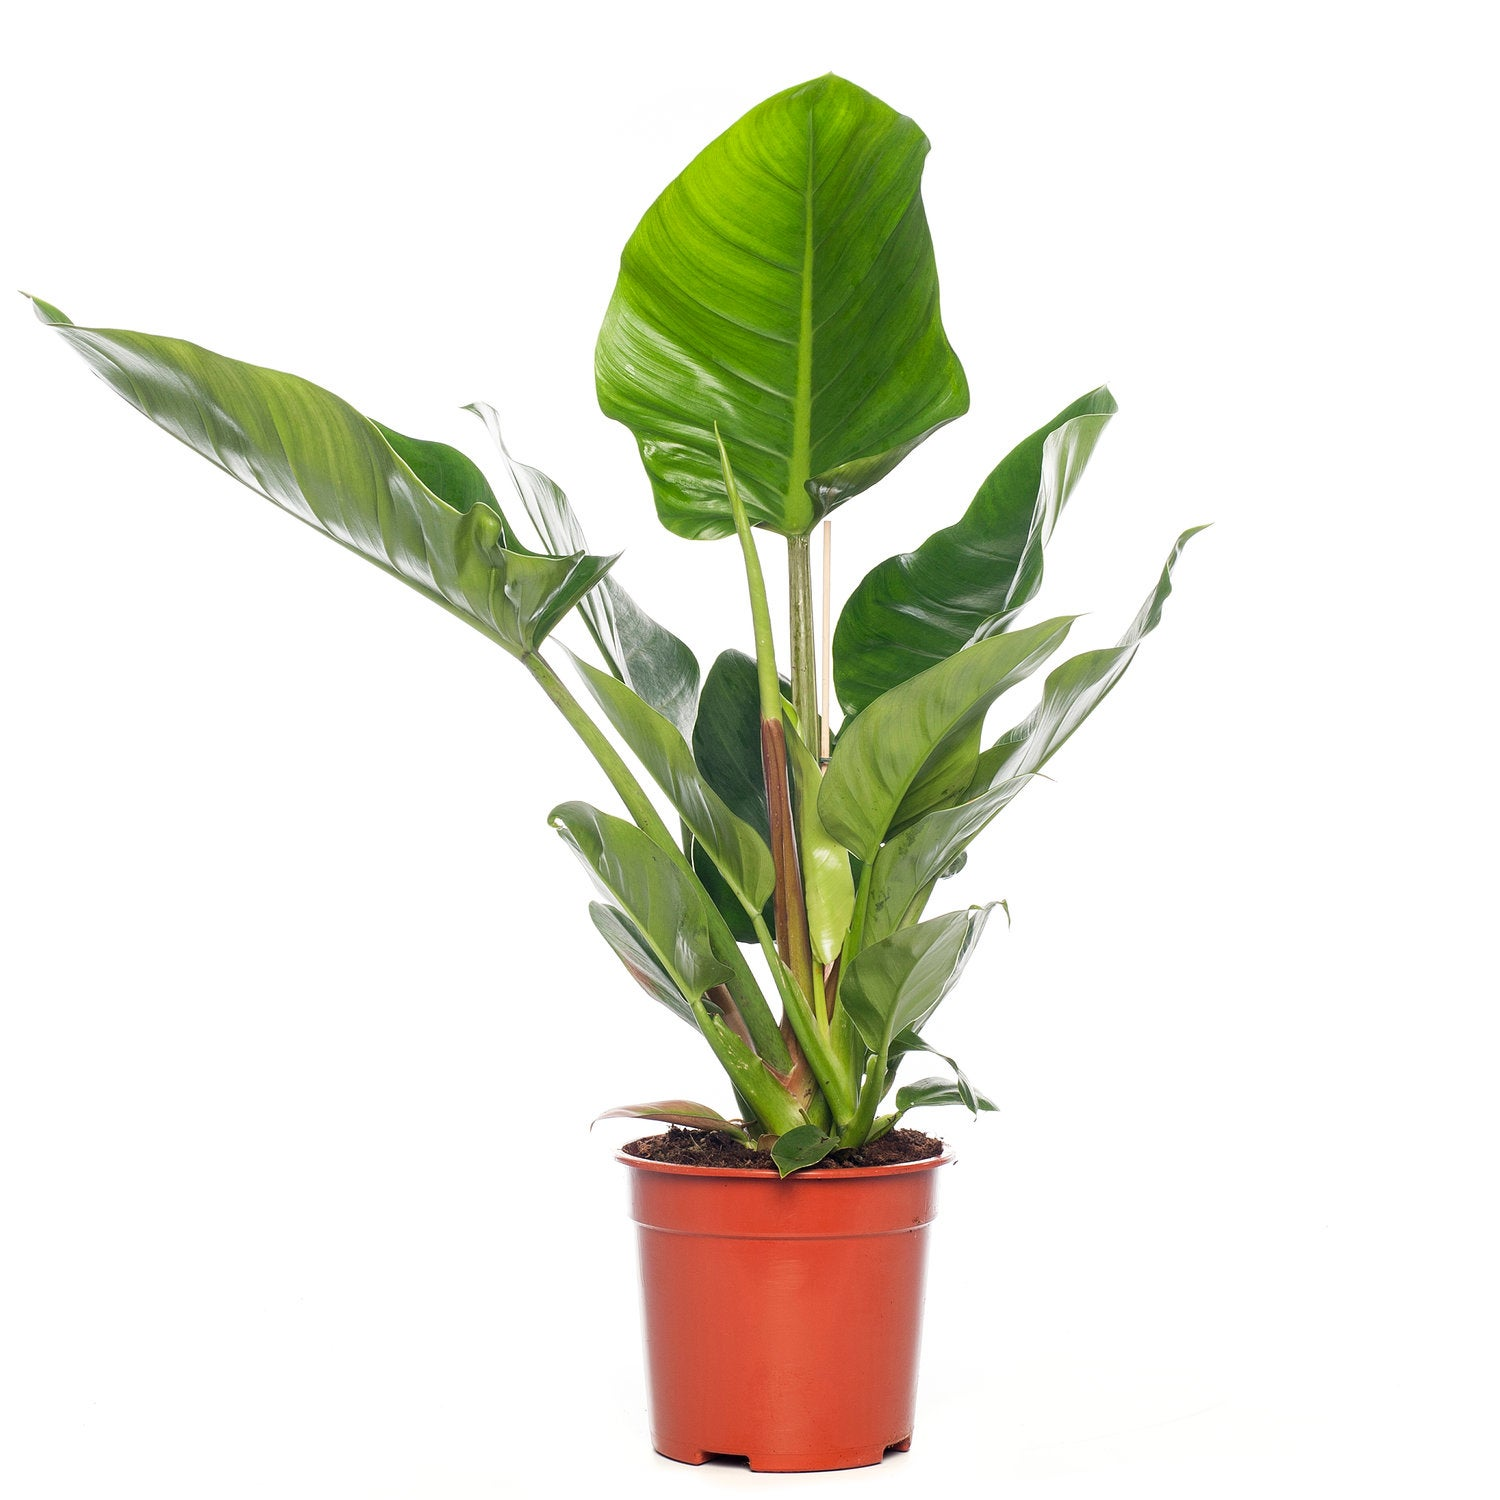 Philodendron (Philodendron 'Imperial Green') D 19 H 60 cm